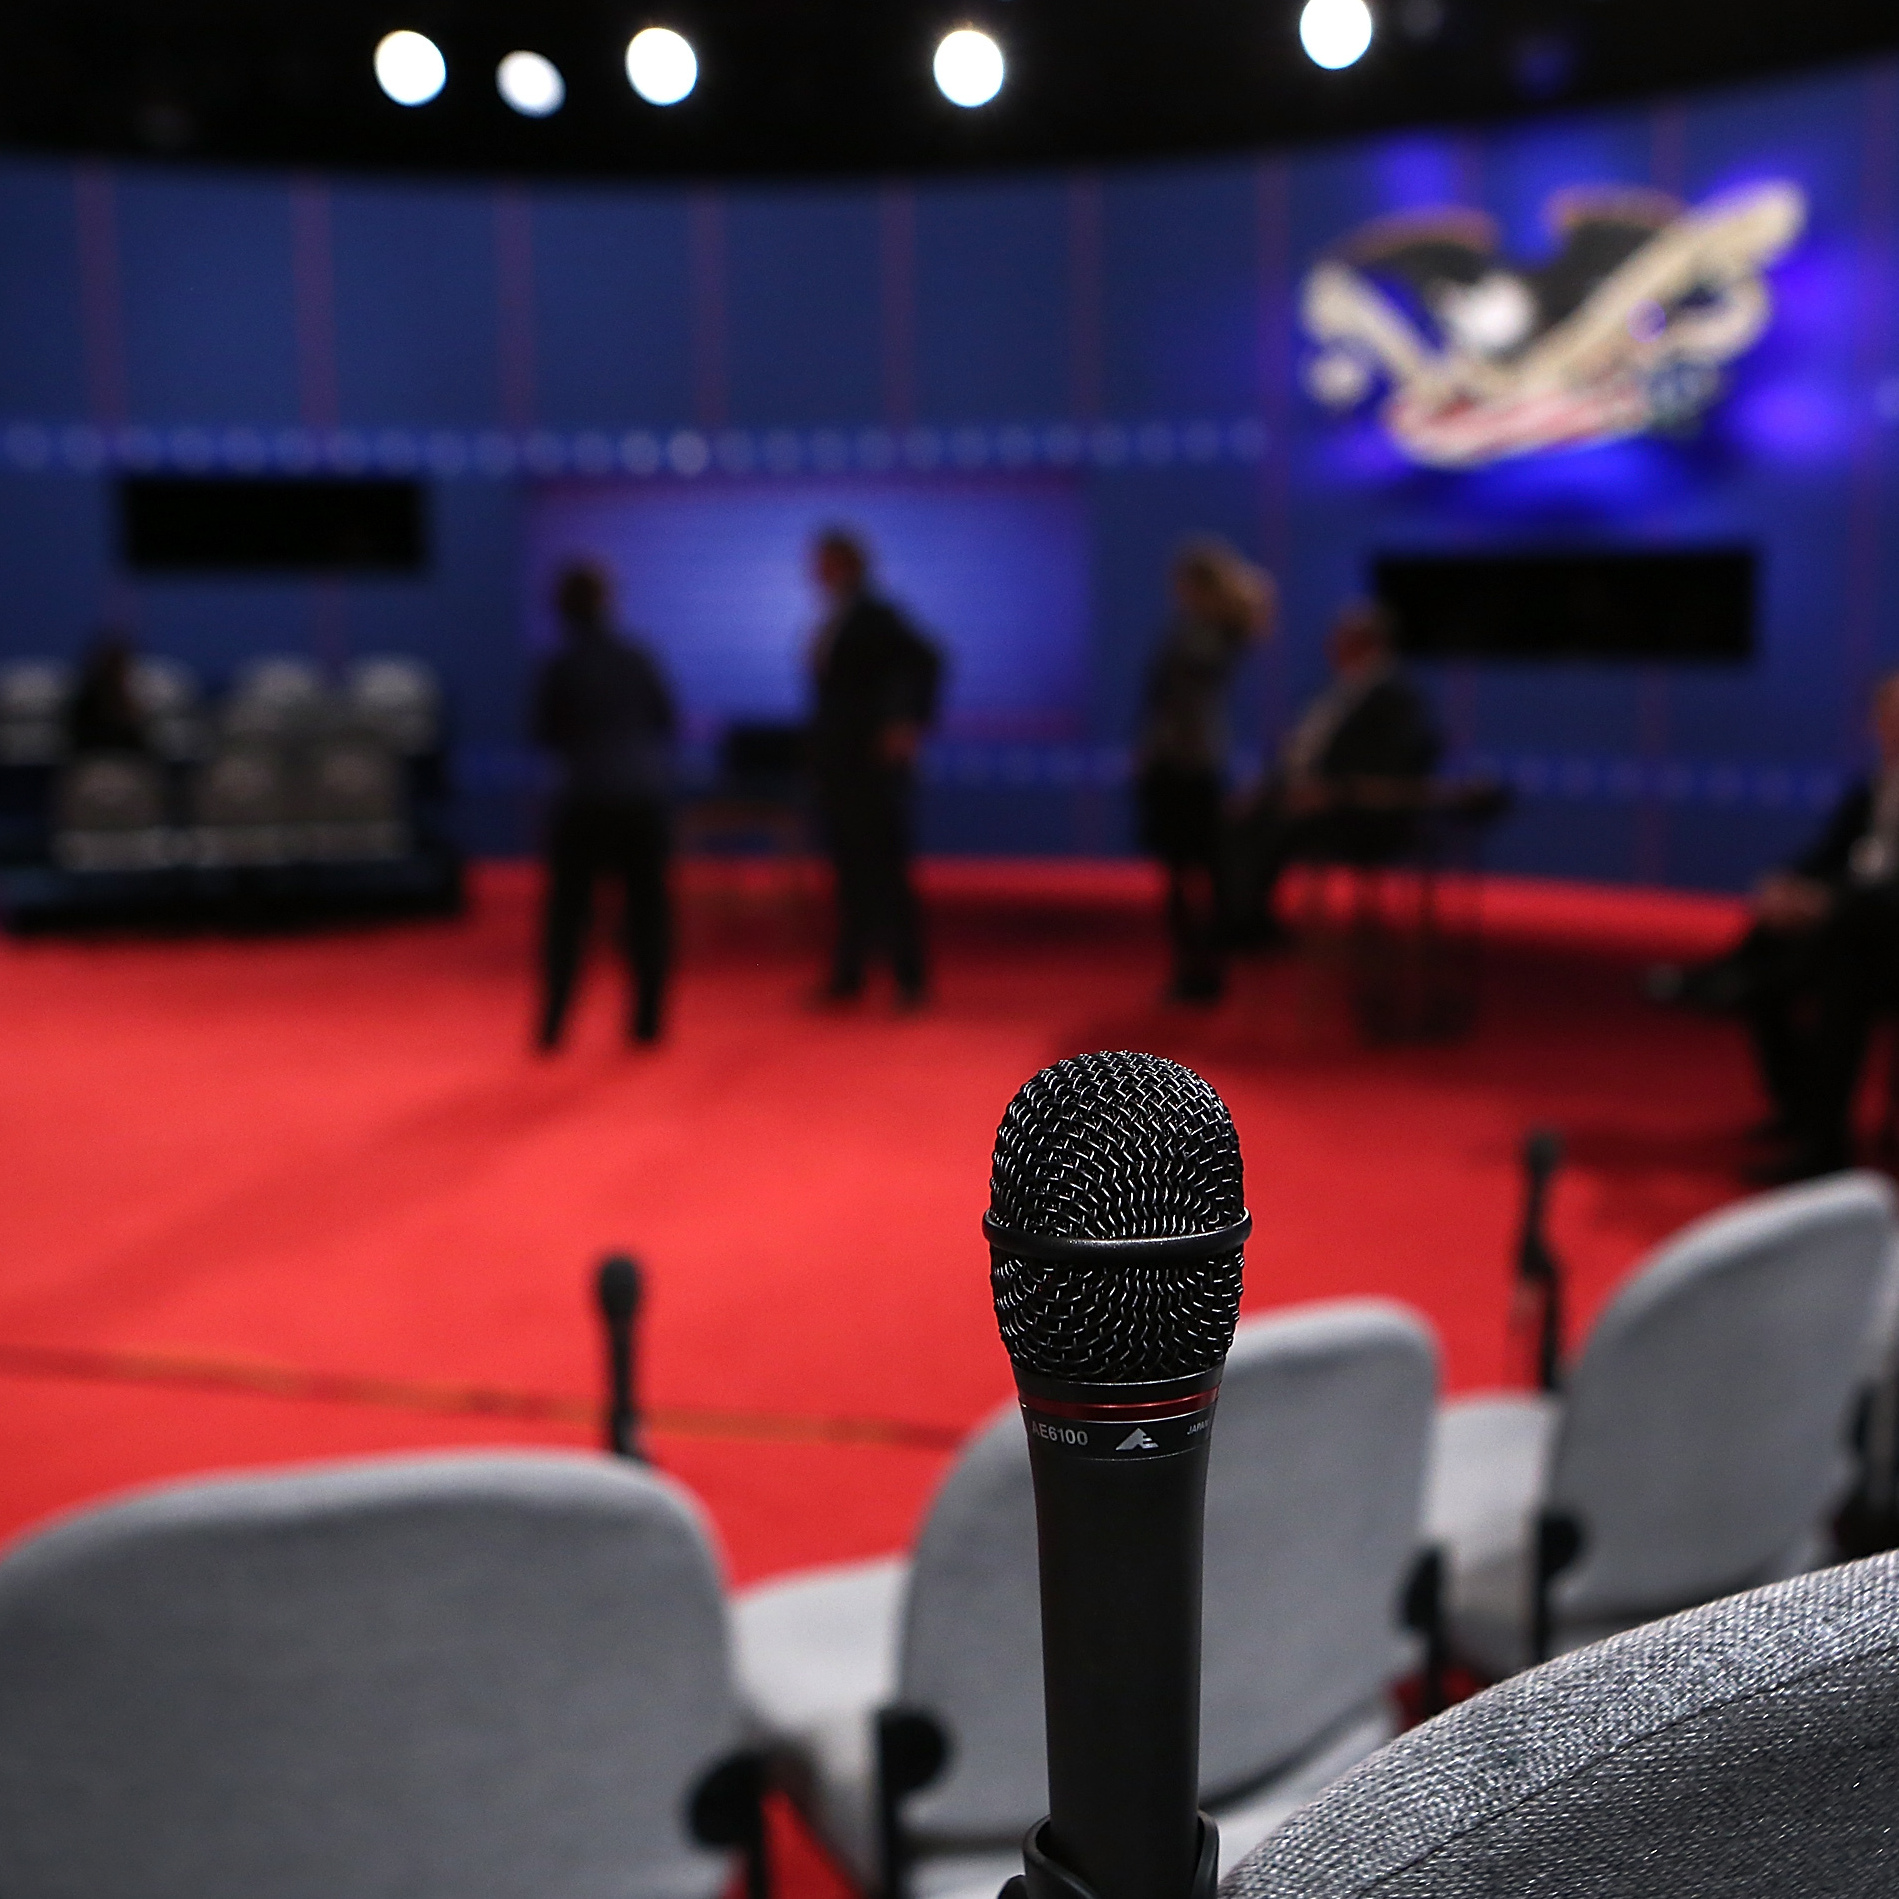 The members of the audience at tonight's town hall-style debate will be 82 voters who say they aren't committed to either candidate. Microphones are ready because the questions will be coming from the audience.